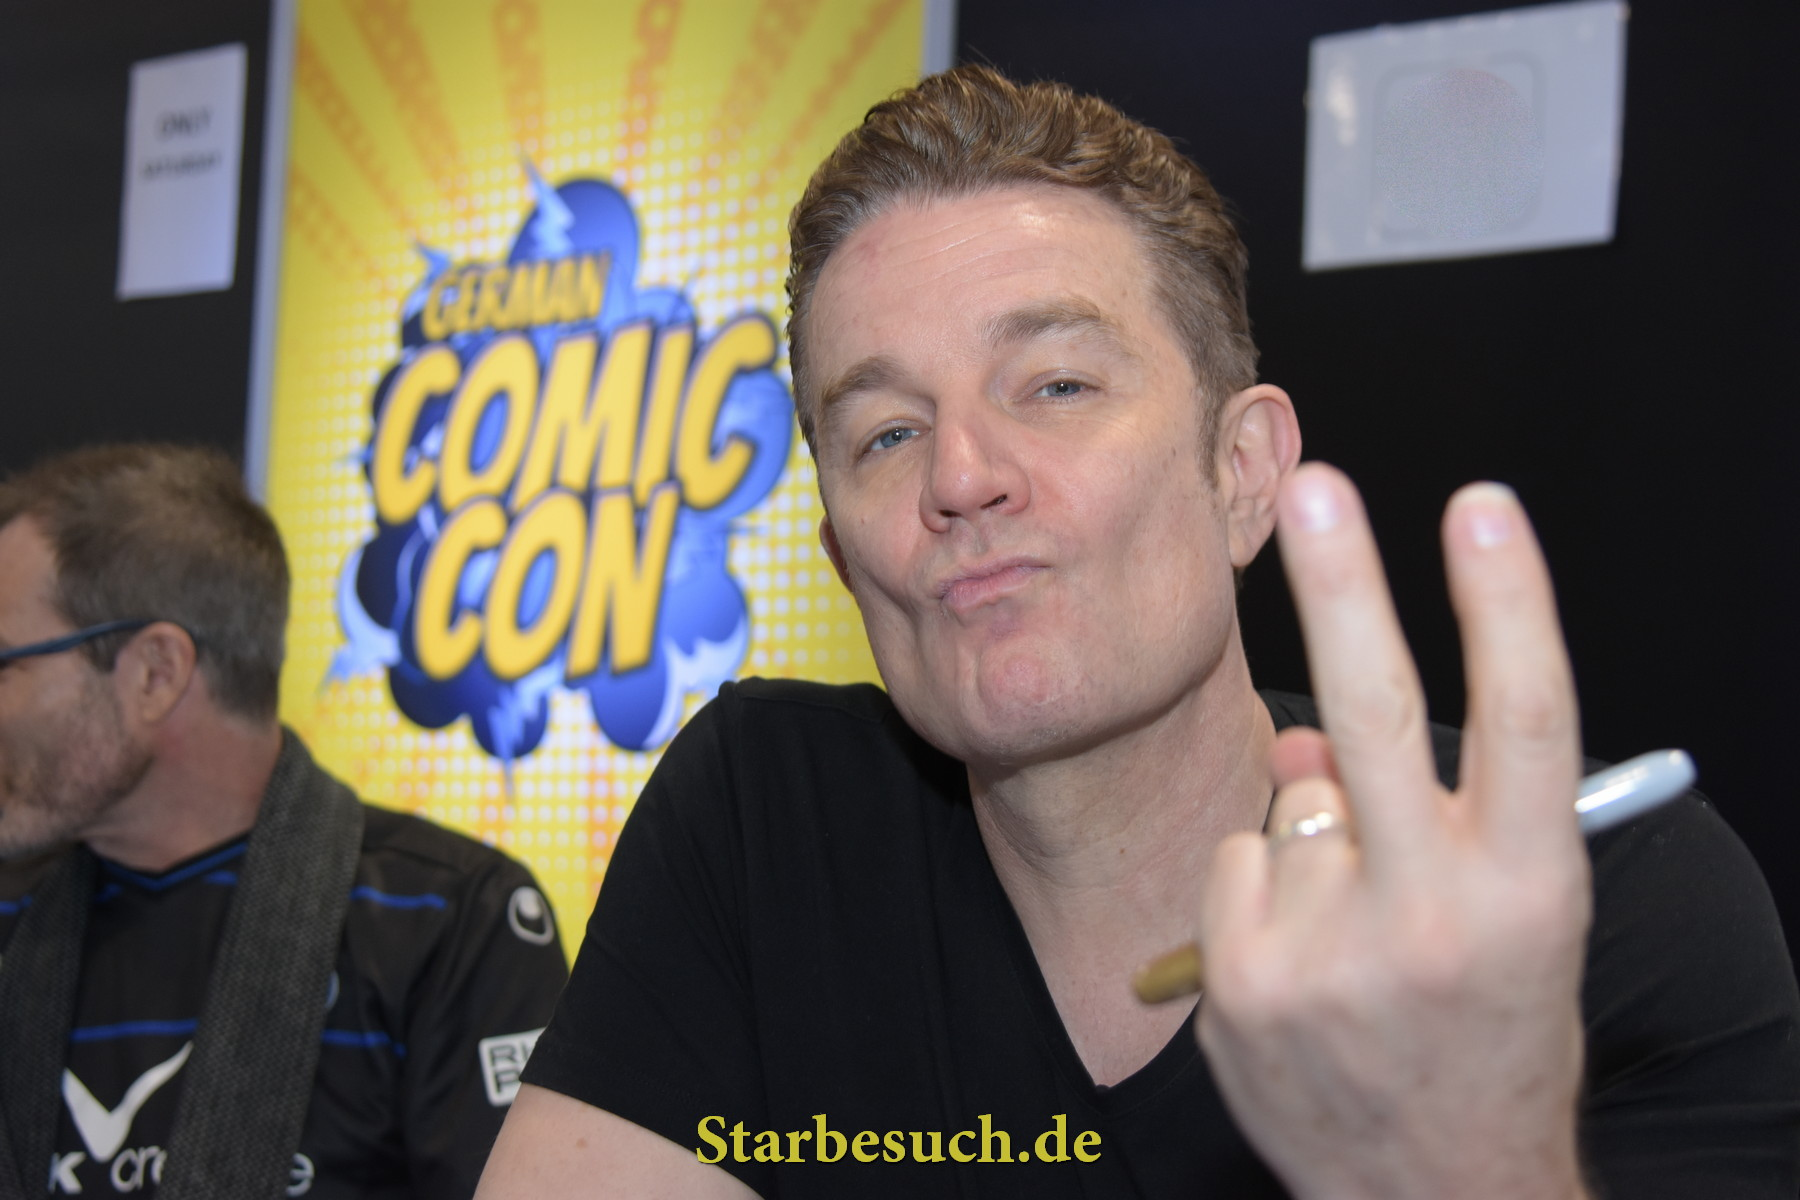 Dortmund, Germany - December 9th 2017: US Actor James Marsters (* 1962, Spike on Buffy The Vampire Slayer) at German Comic Con Dortmund. More than 30 celebrities attended the event.